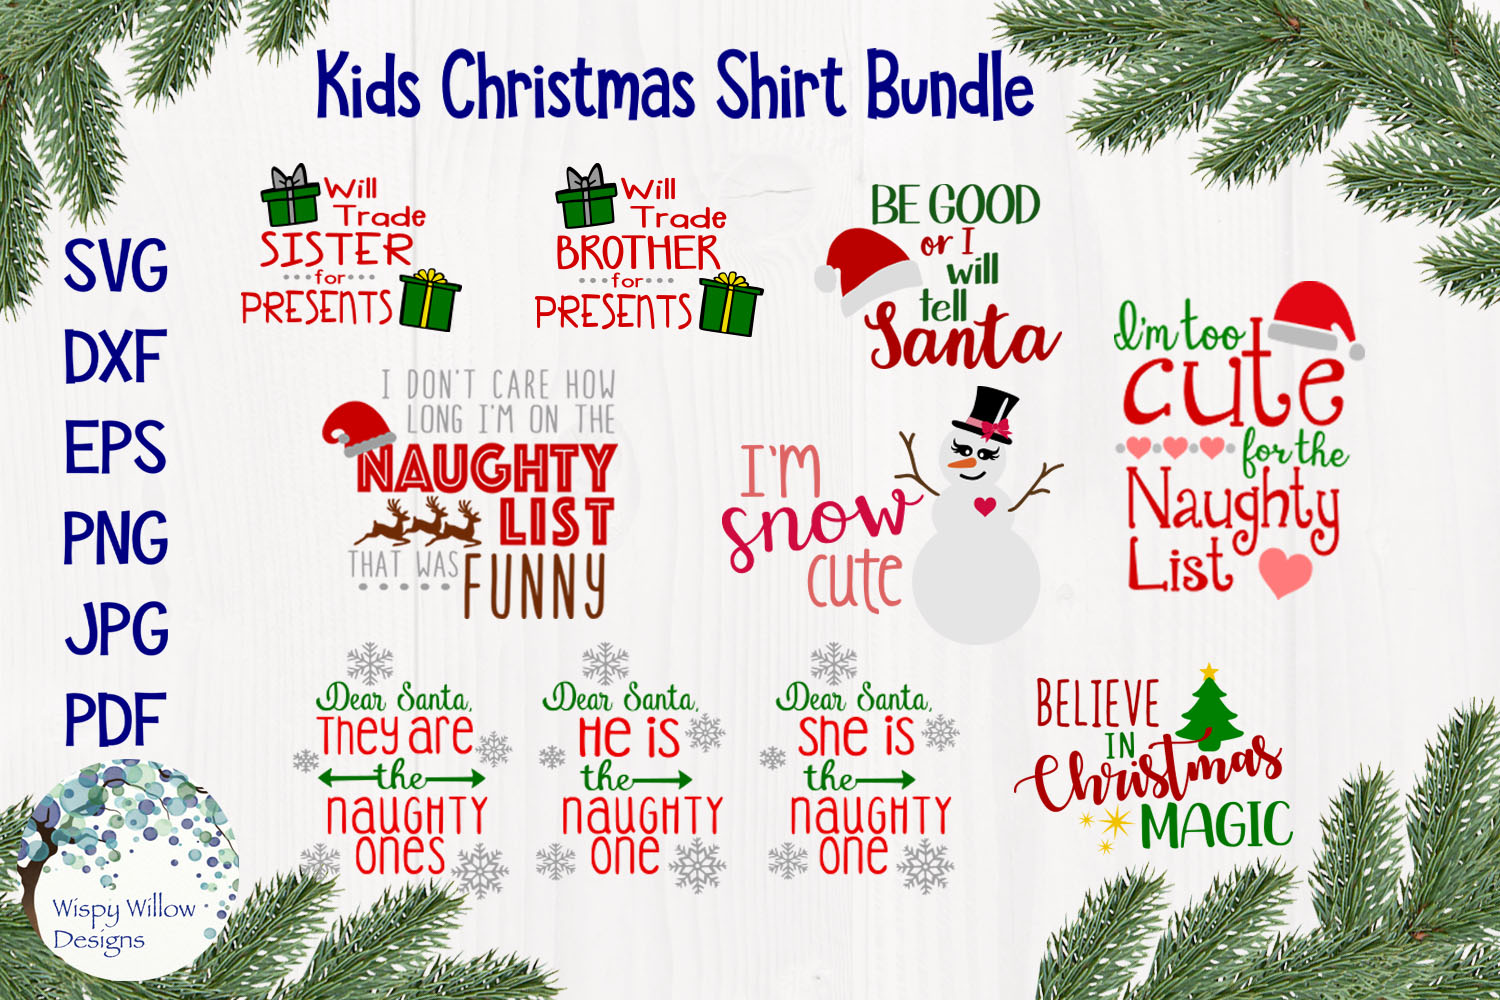 Kids Christmas Shirt Bundle | Funny Christmas SVG Cut Files example image 1